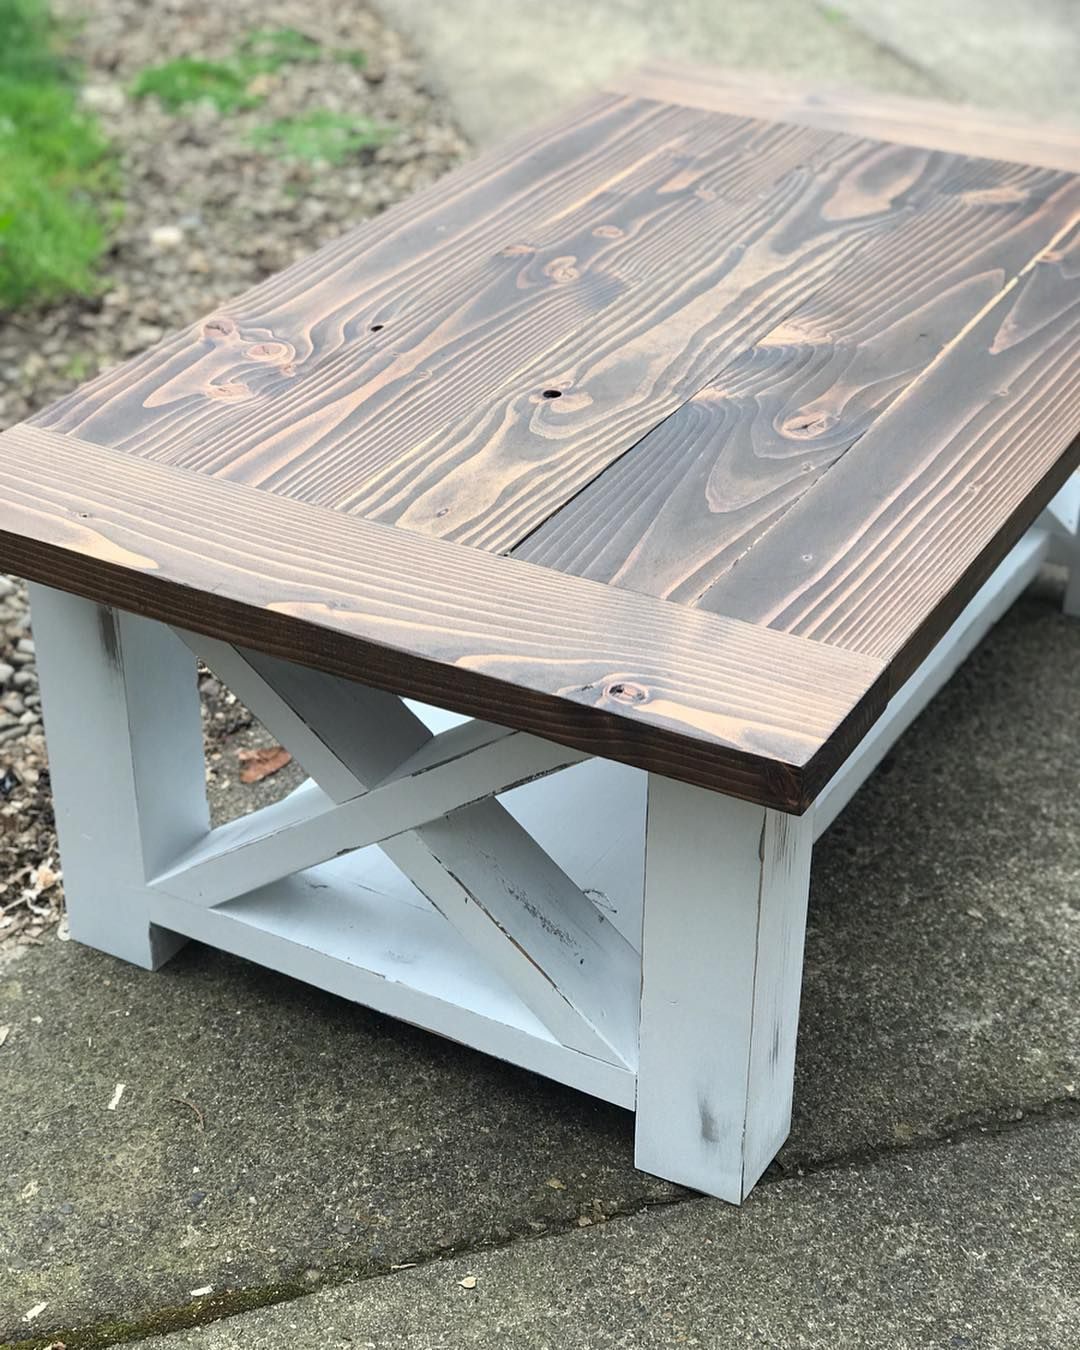 Chunky Leg Coffee Table Headed Out This Week In 2020 Coffee Table Rustic Dining Table Table [ 1350 x 1080 Pixel ]